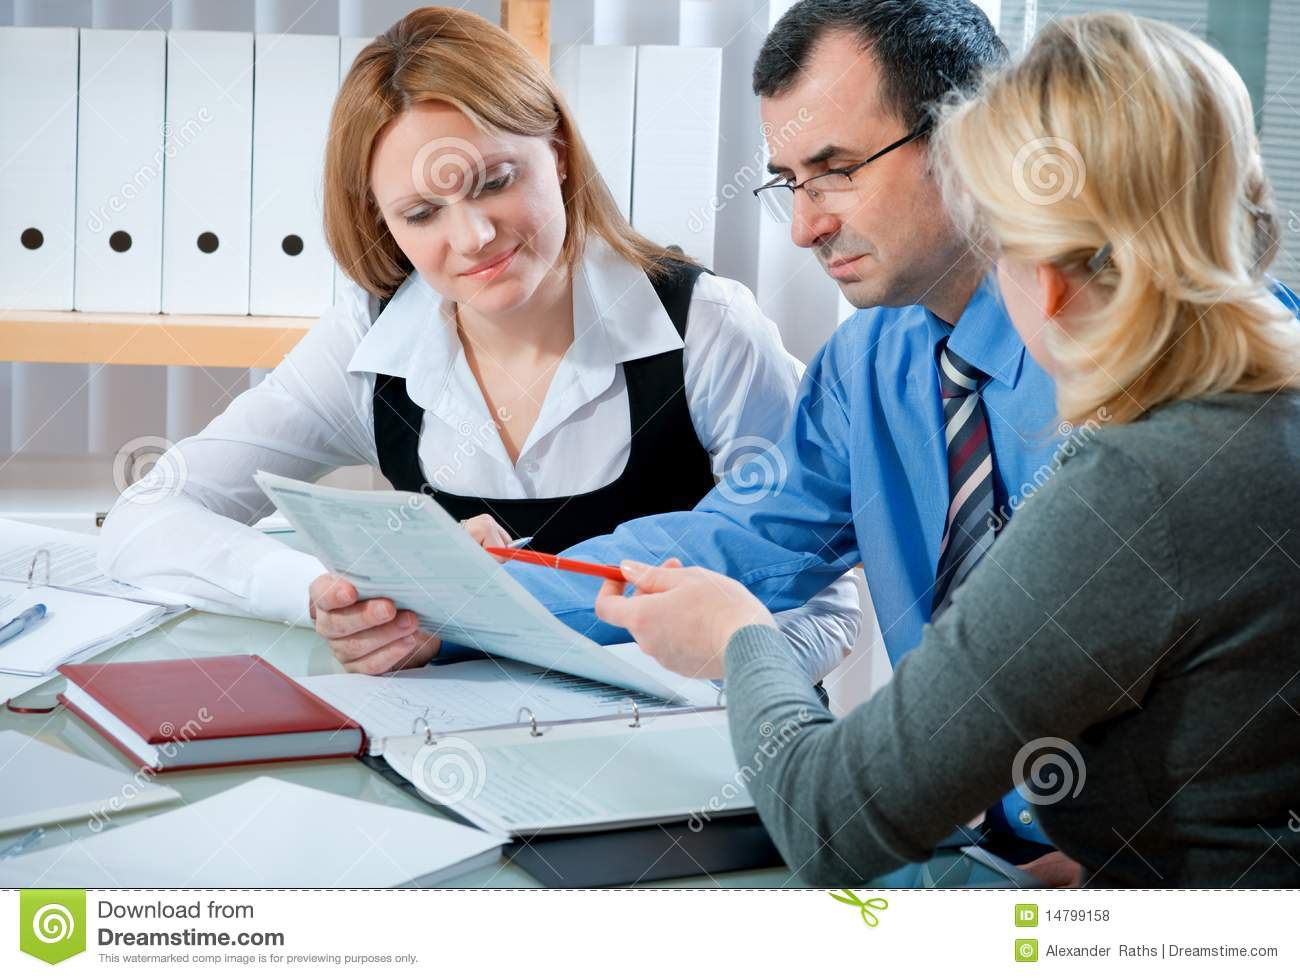 Business People Royalty Free Stock Photos - Image: 14799158: dreamstime.com/royalty-free-stock-photos-business-people-image14799158